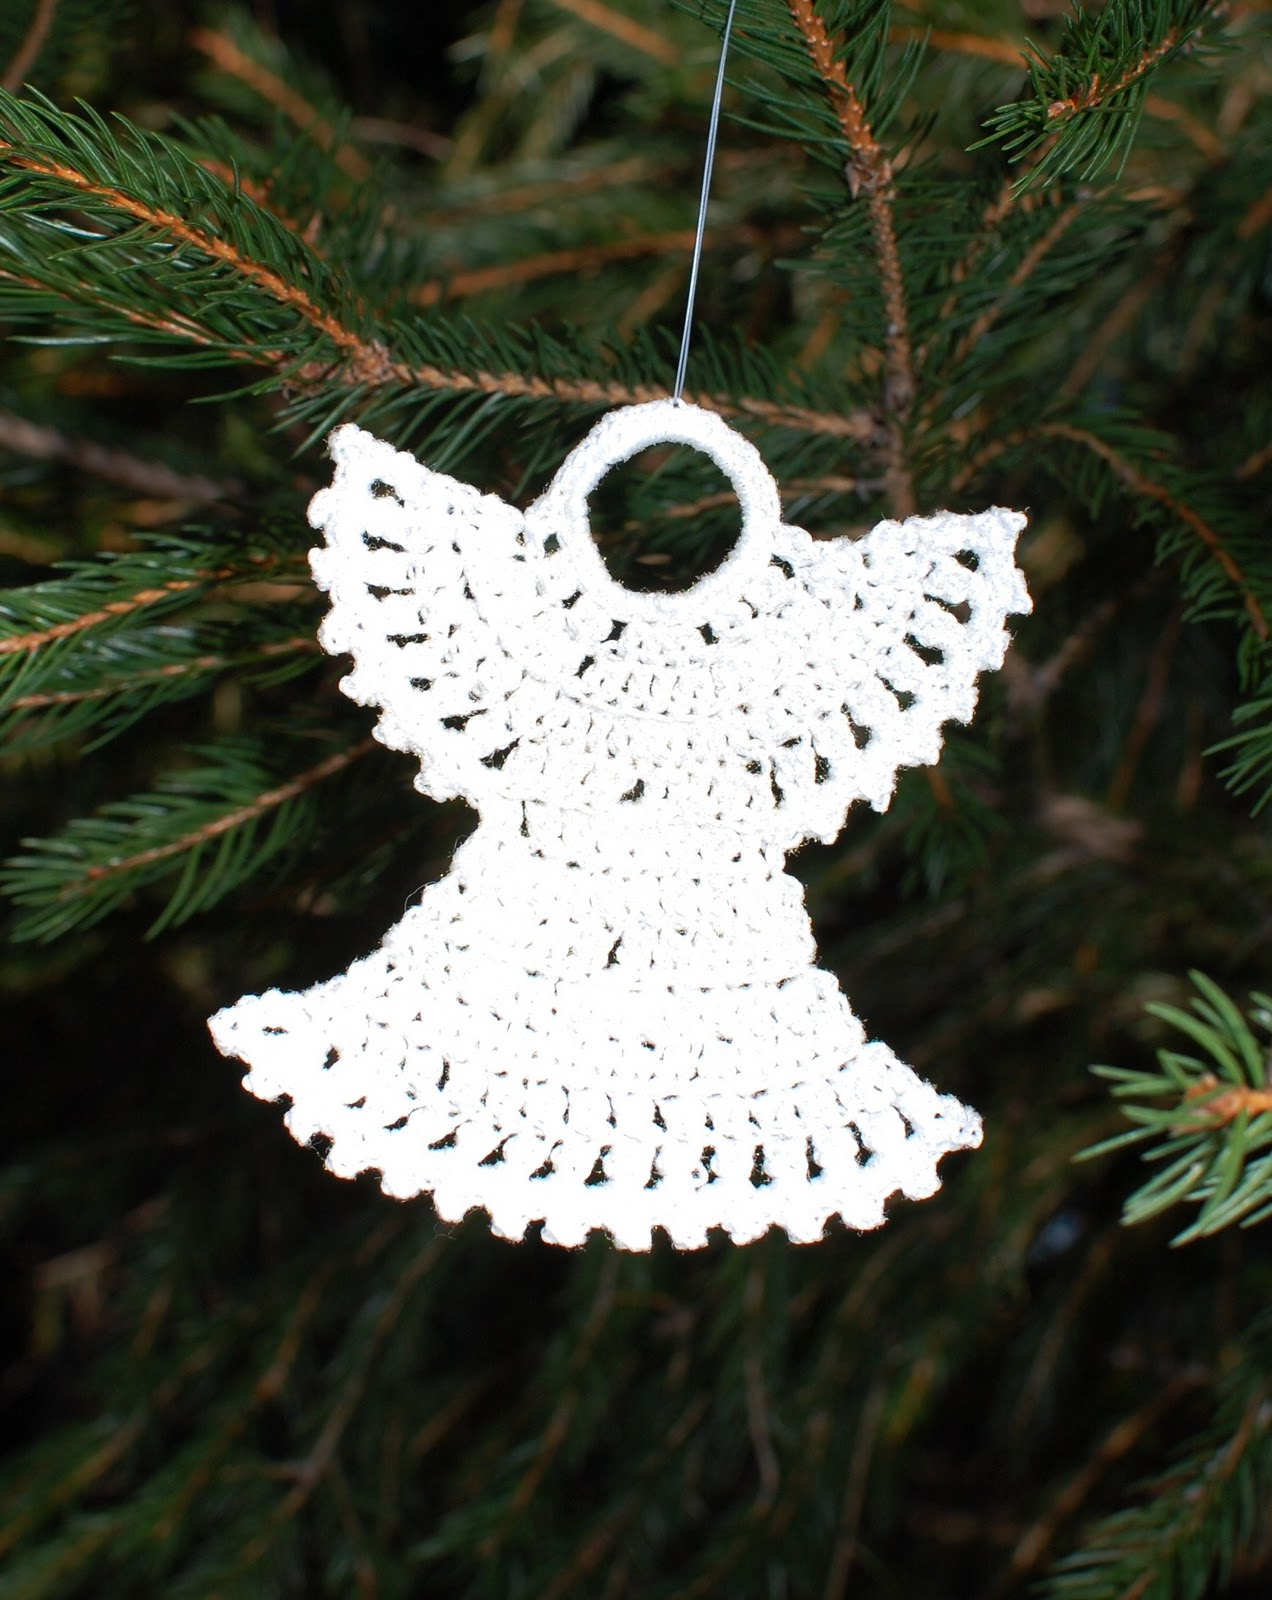 Crochet Ornaments : Crocheted Christmas Ornaments - Petals to Picots